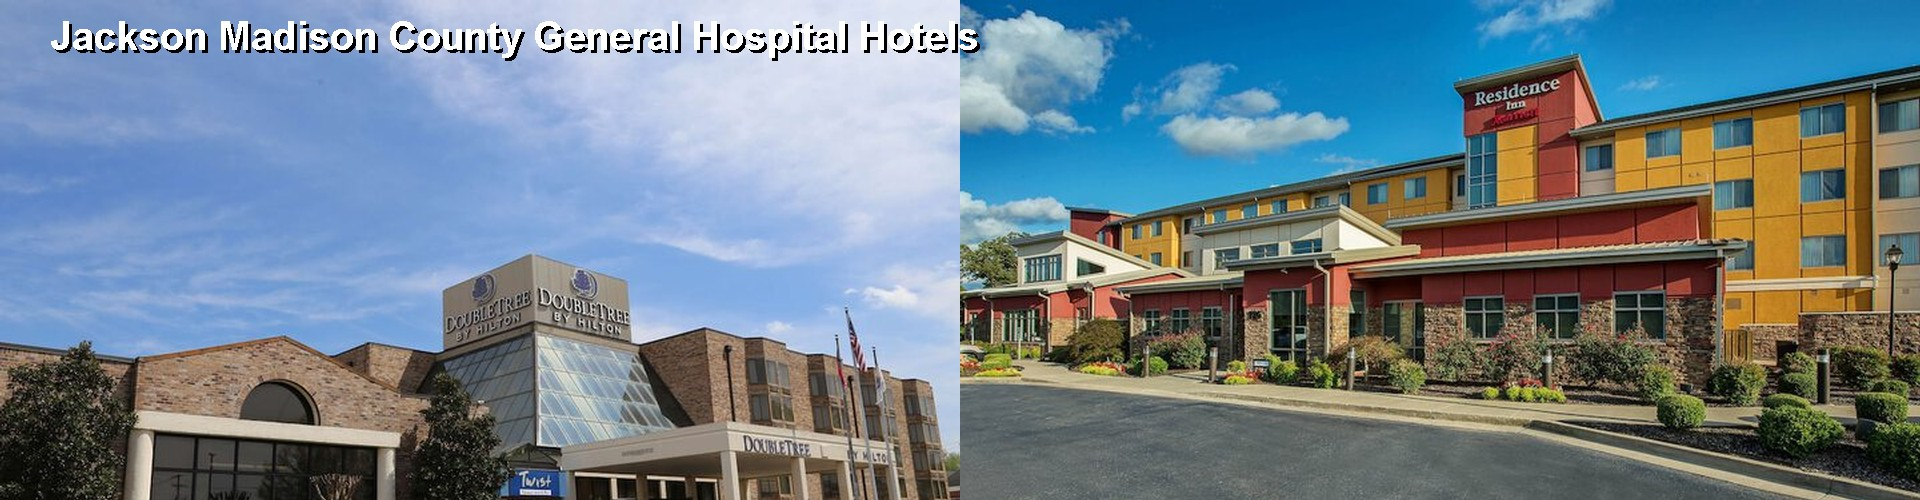 5 Best Hotels near Jackson Madison County General Hospital